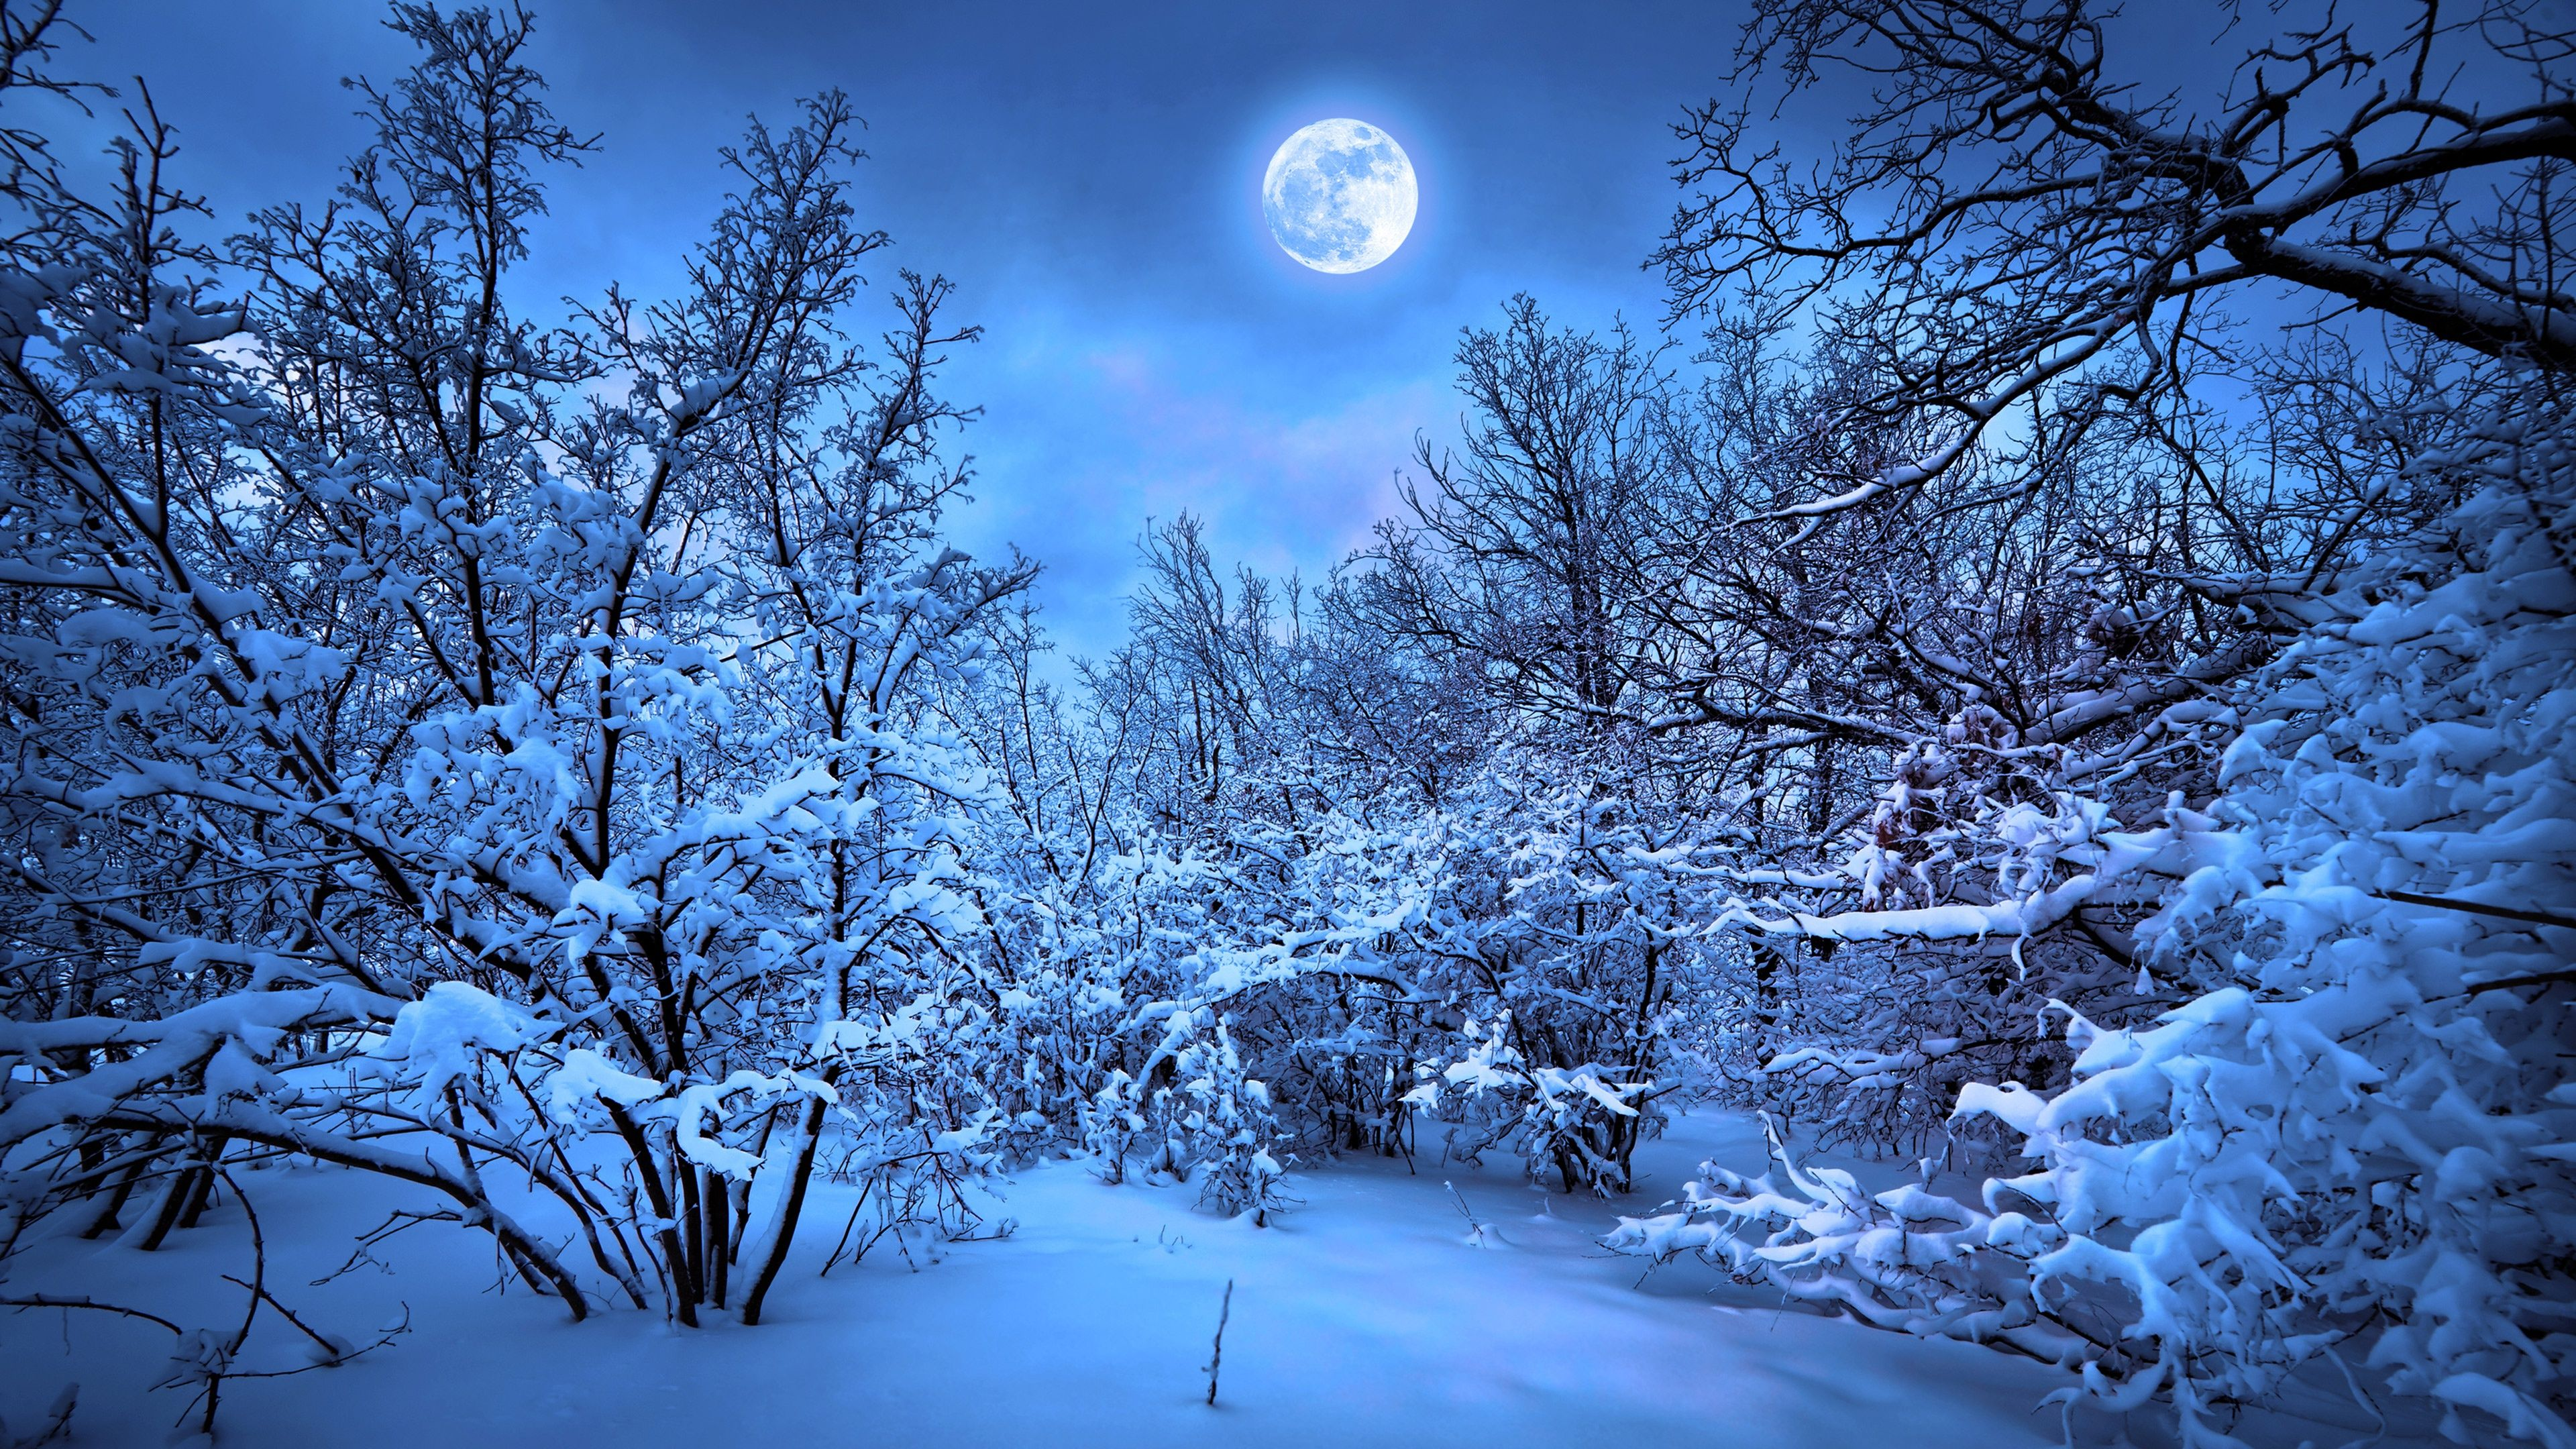 Winter 4k Wallpaper 3840 2160 Free Download Winter 4k Wallpaper 3840 2160 Wallpapers Download Winter 4k Wallpaper 38 Winter Moon Winter Wallpaper Snow Forest